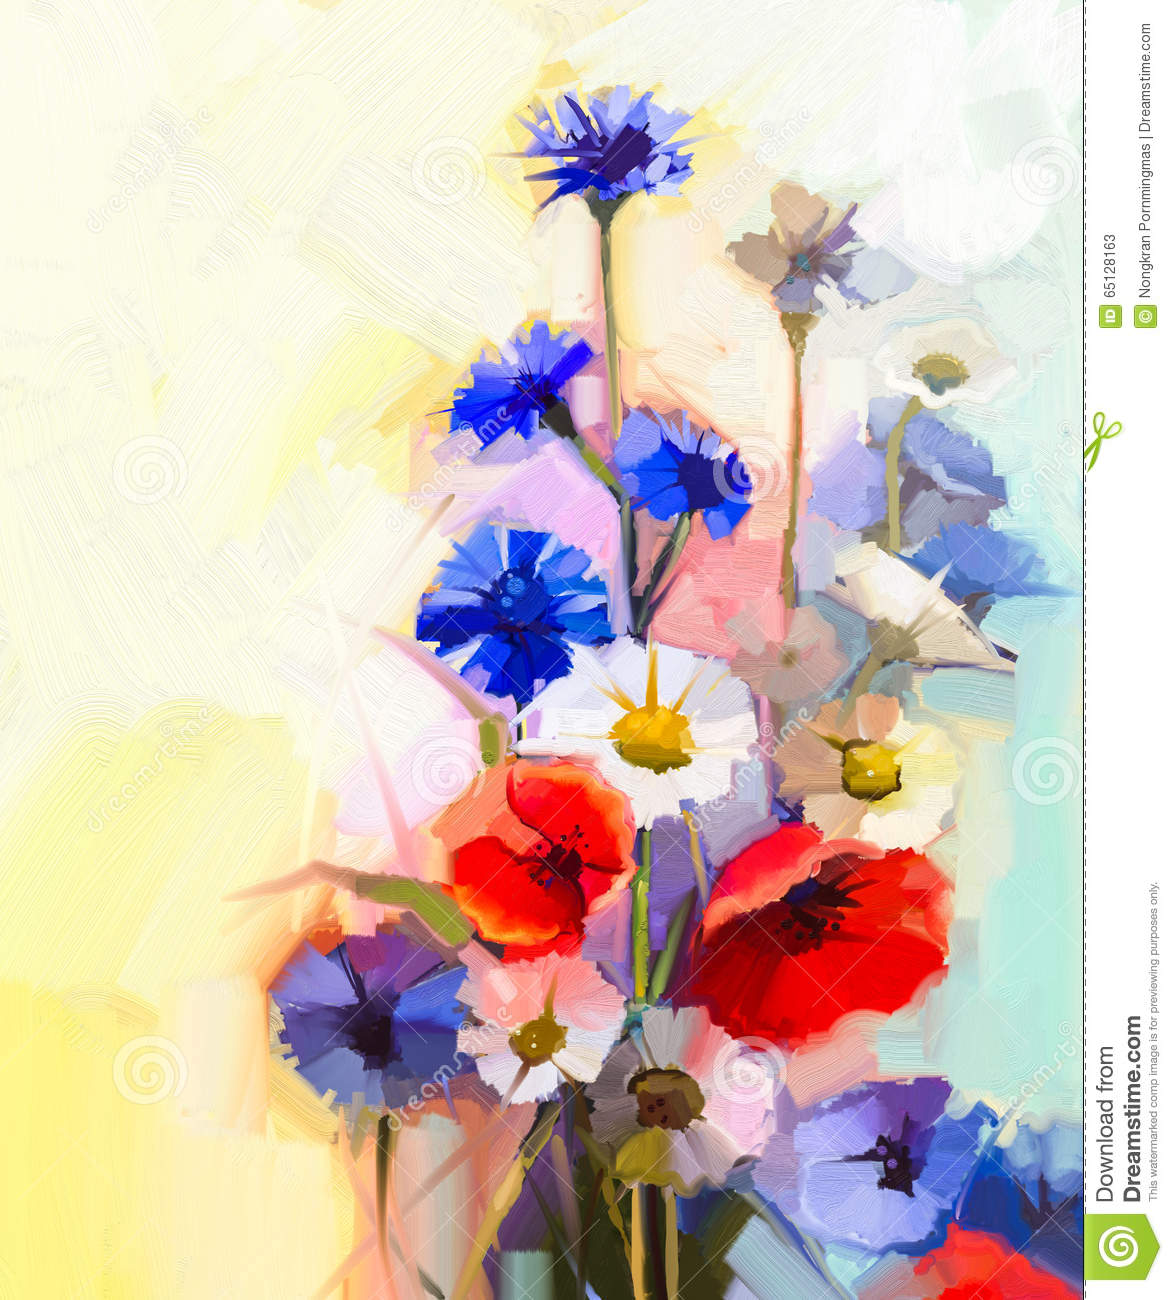 Oil Painting Red Poppy Flowers Blue Cornflower And White Daisy